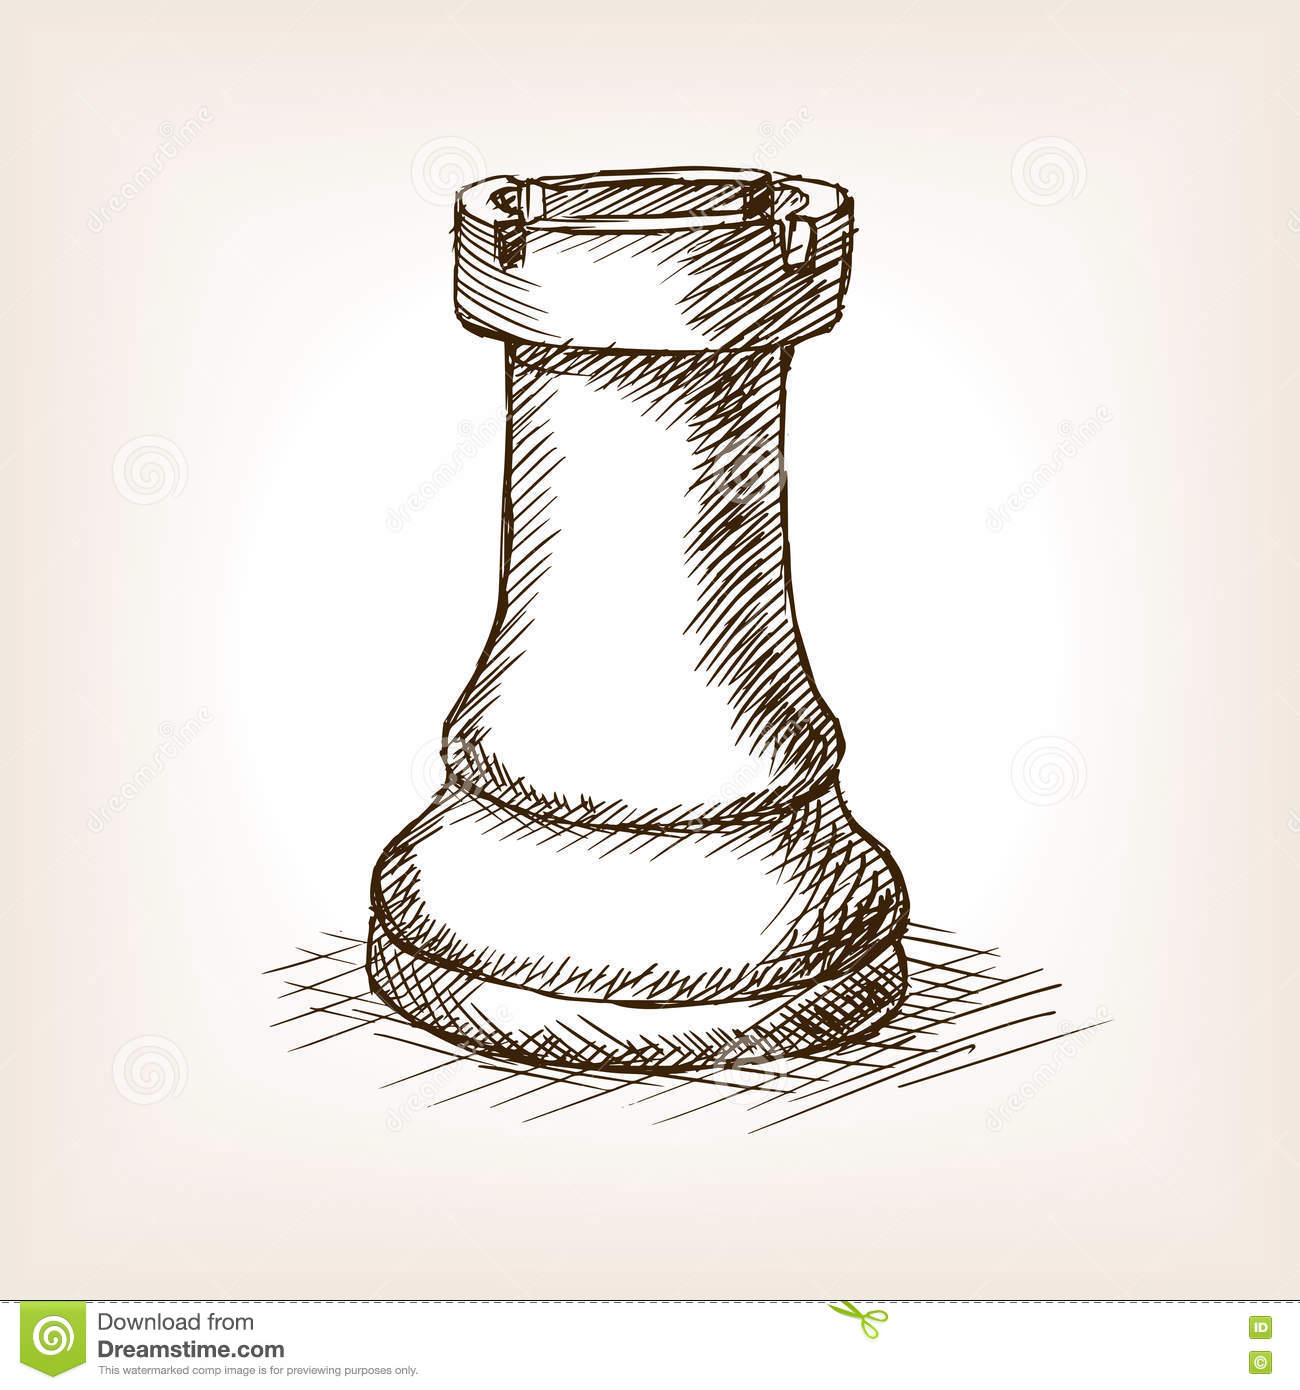 Stock Illustration Rook Chess Piece Hand Drawn Sketch Style Vector ...